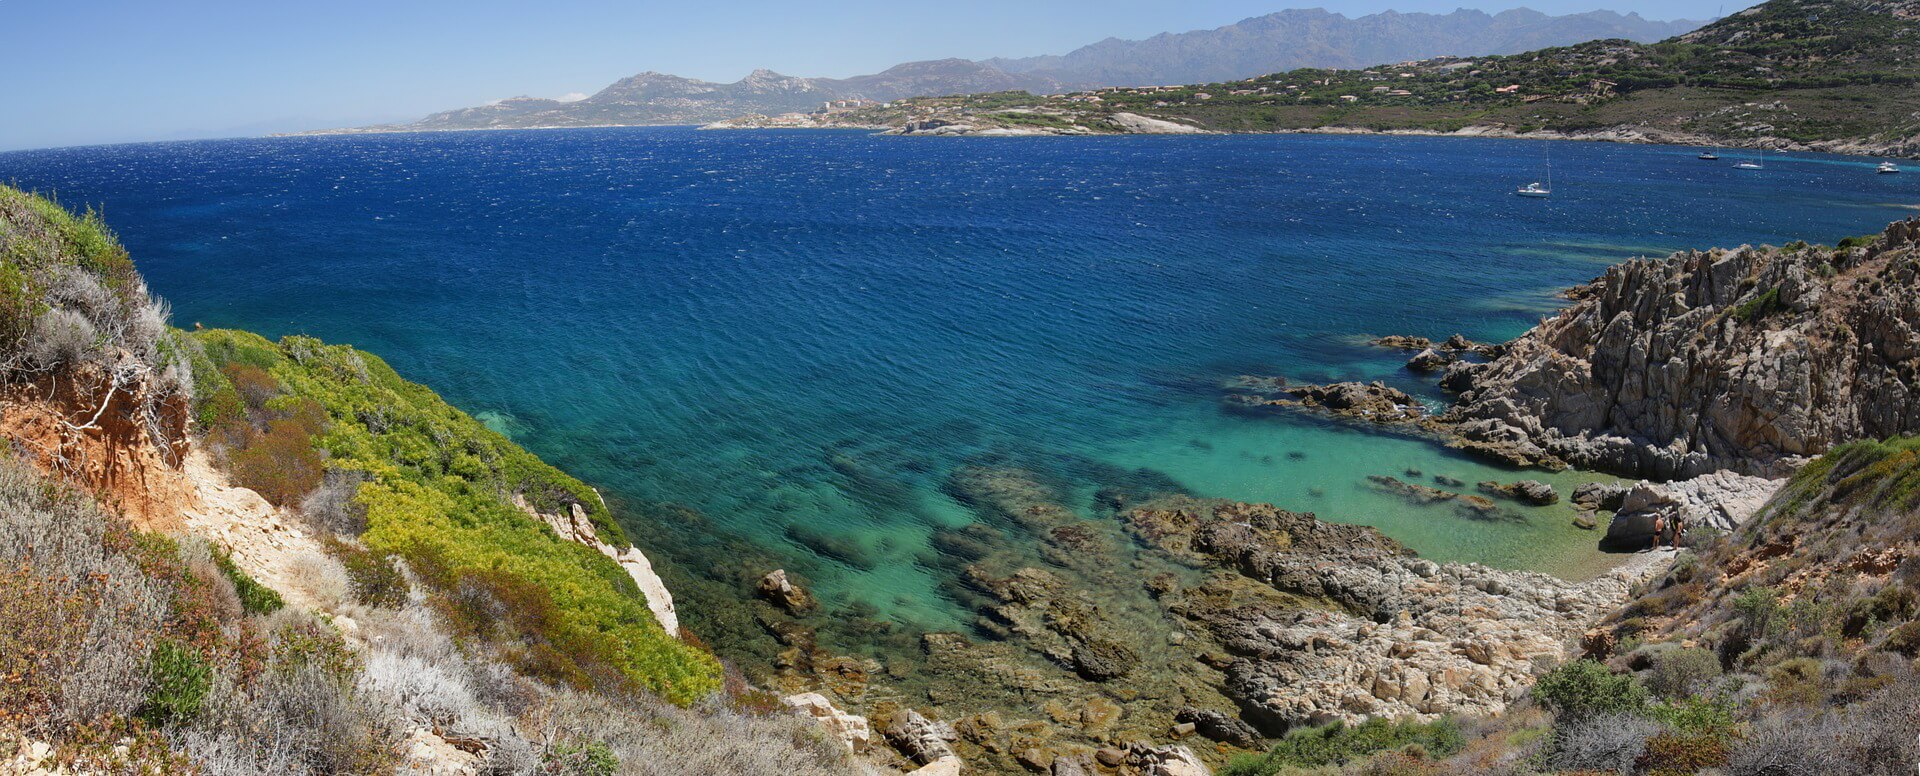 Beautiful Beaches in Corsica - Corsica